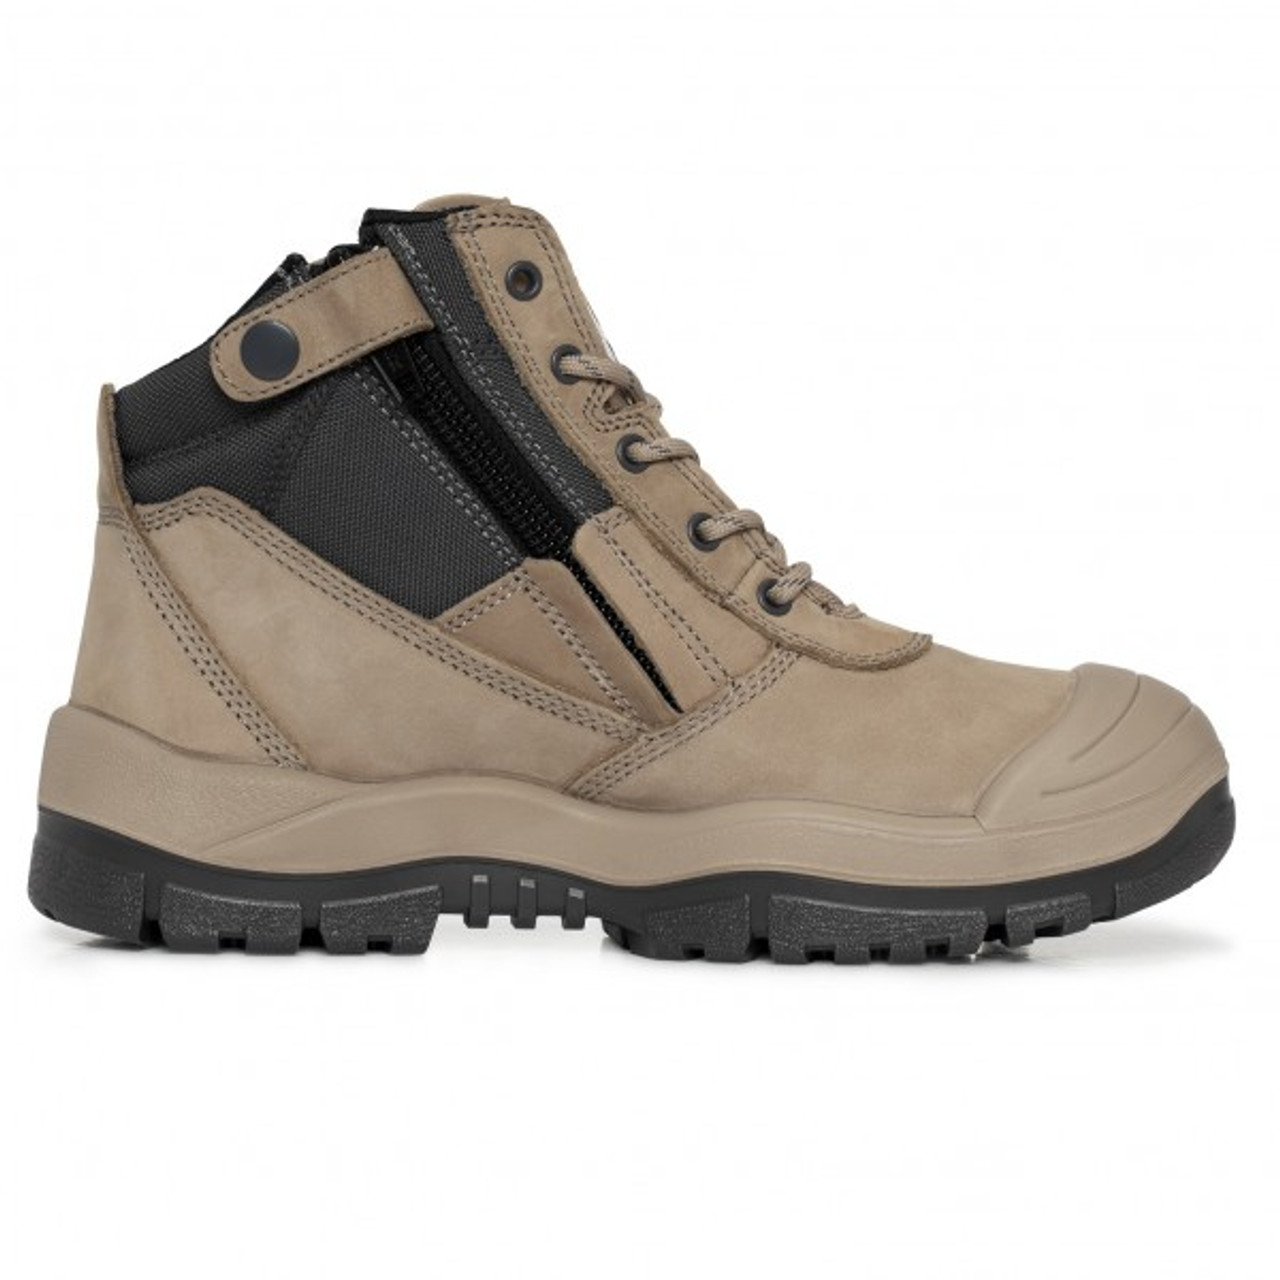 05b8f87c670 Mongrel 461060 Zip Side Safety Boot With Scuff Stone